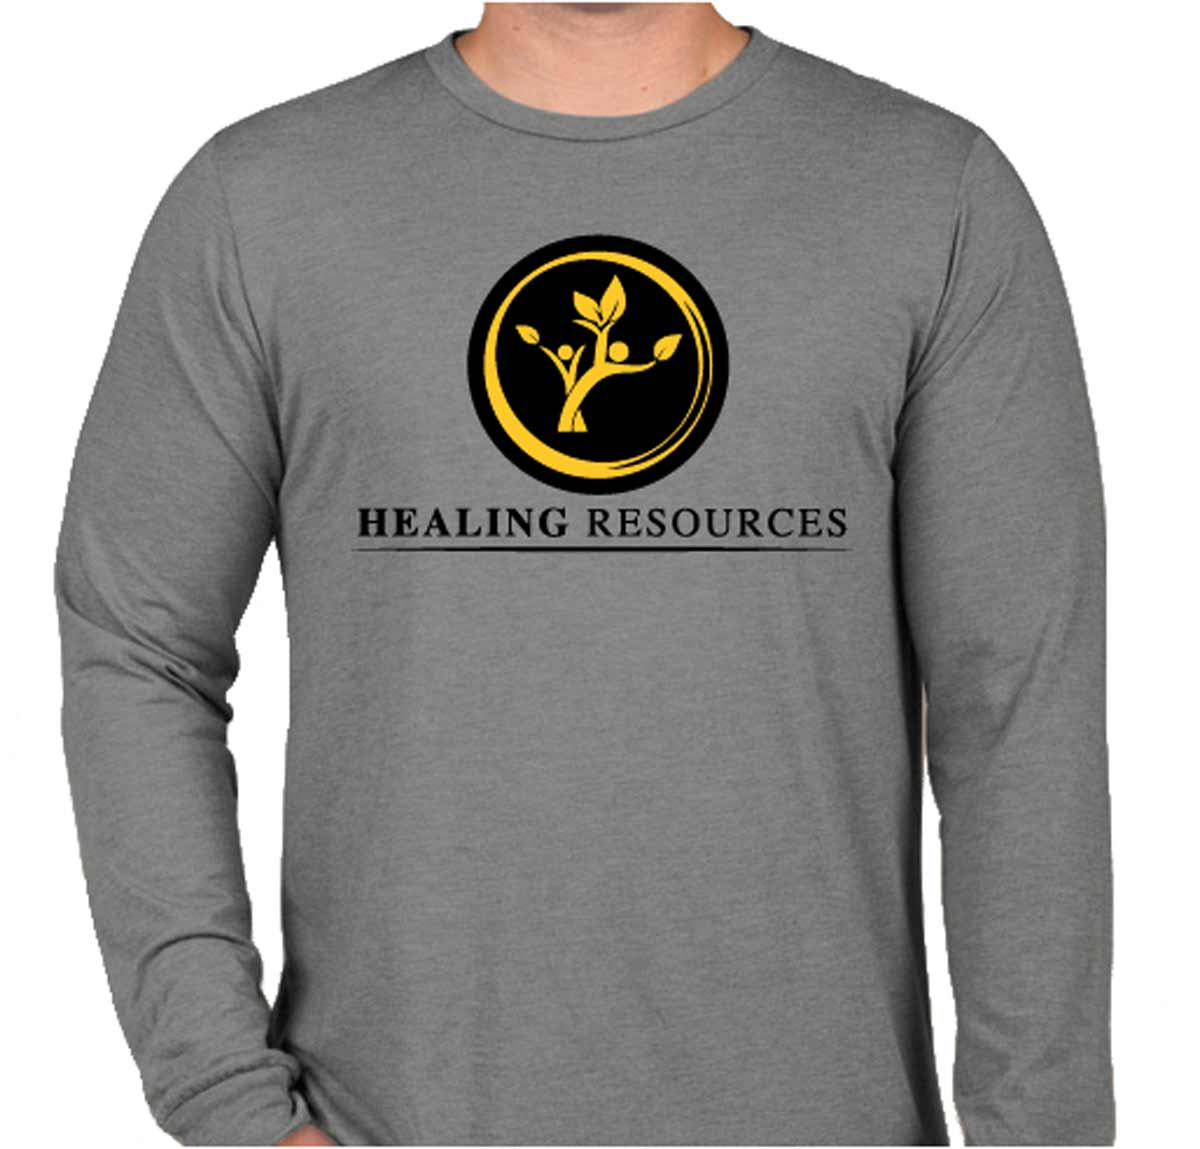 Healing Resources Long Sleeve Shirt